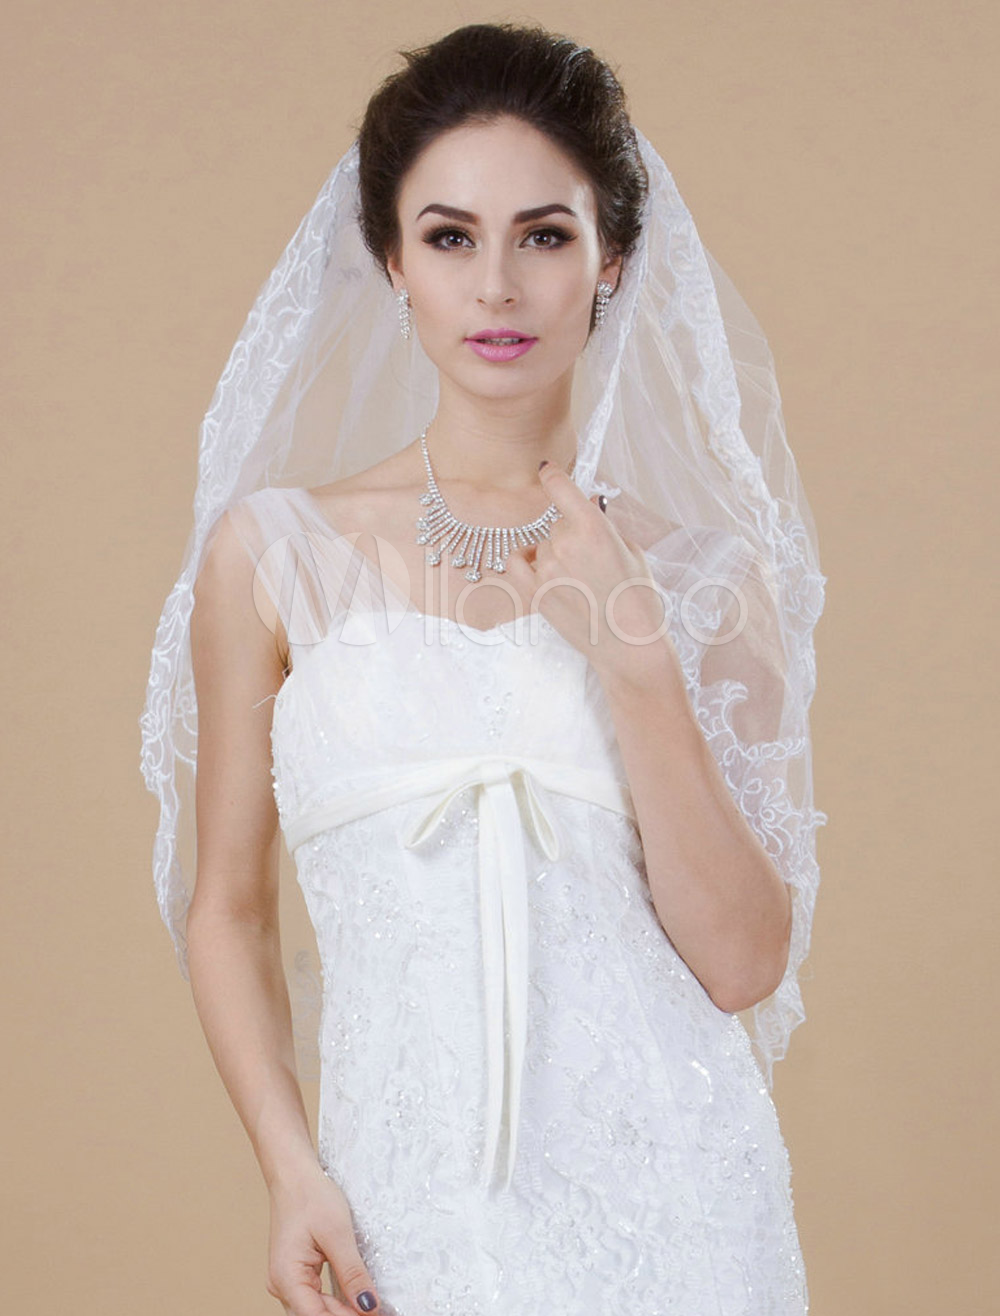 Two-Tier Wonderful Tulle Lace Wedding Elbow Veil For Bride